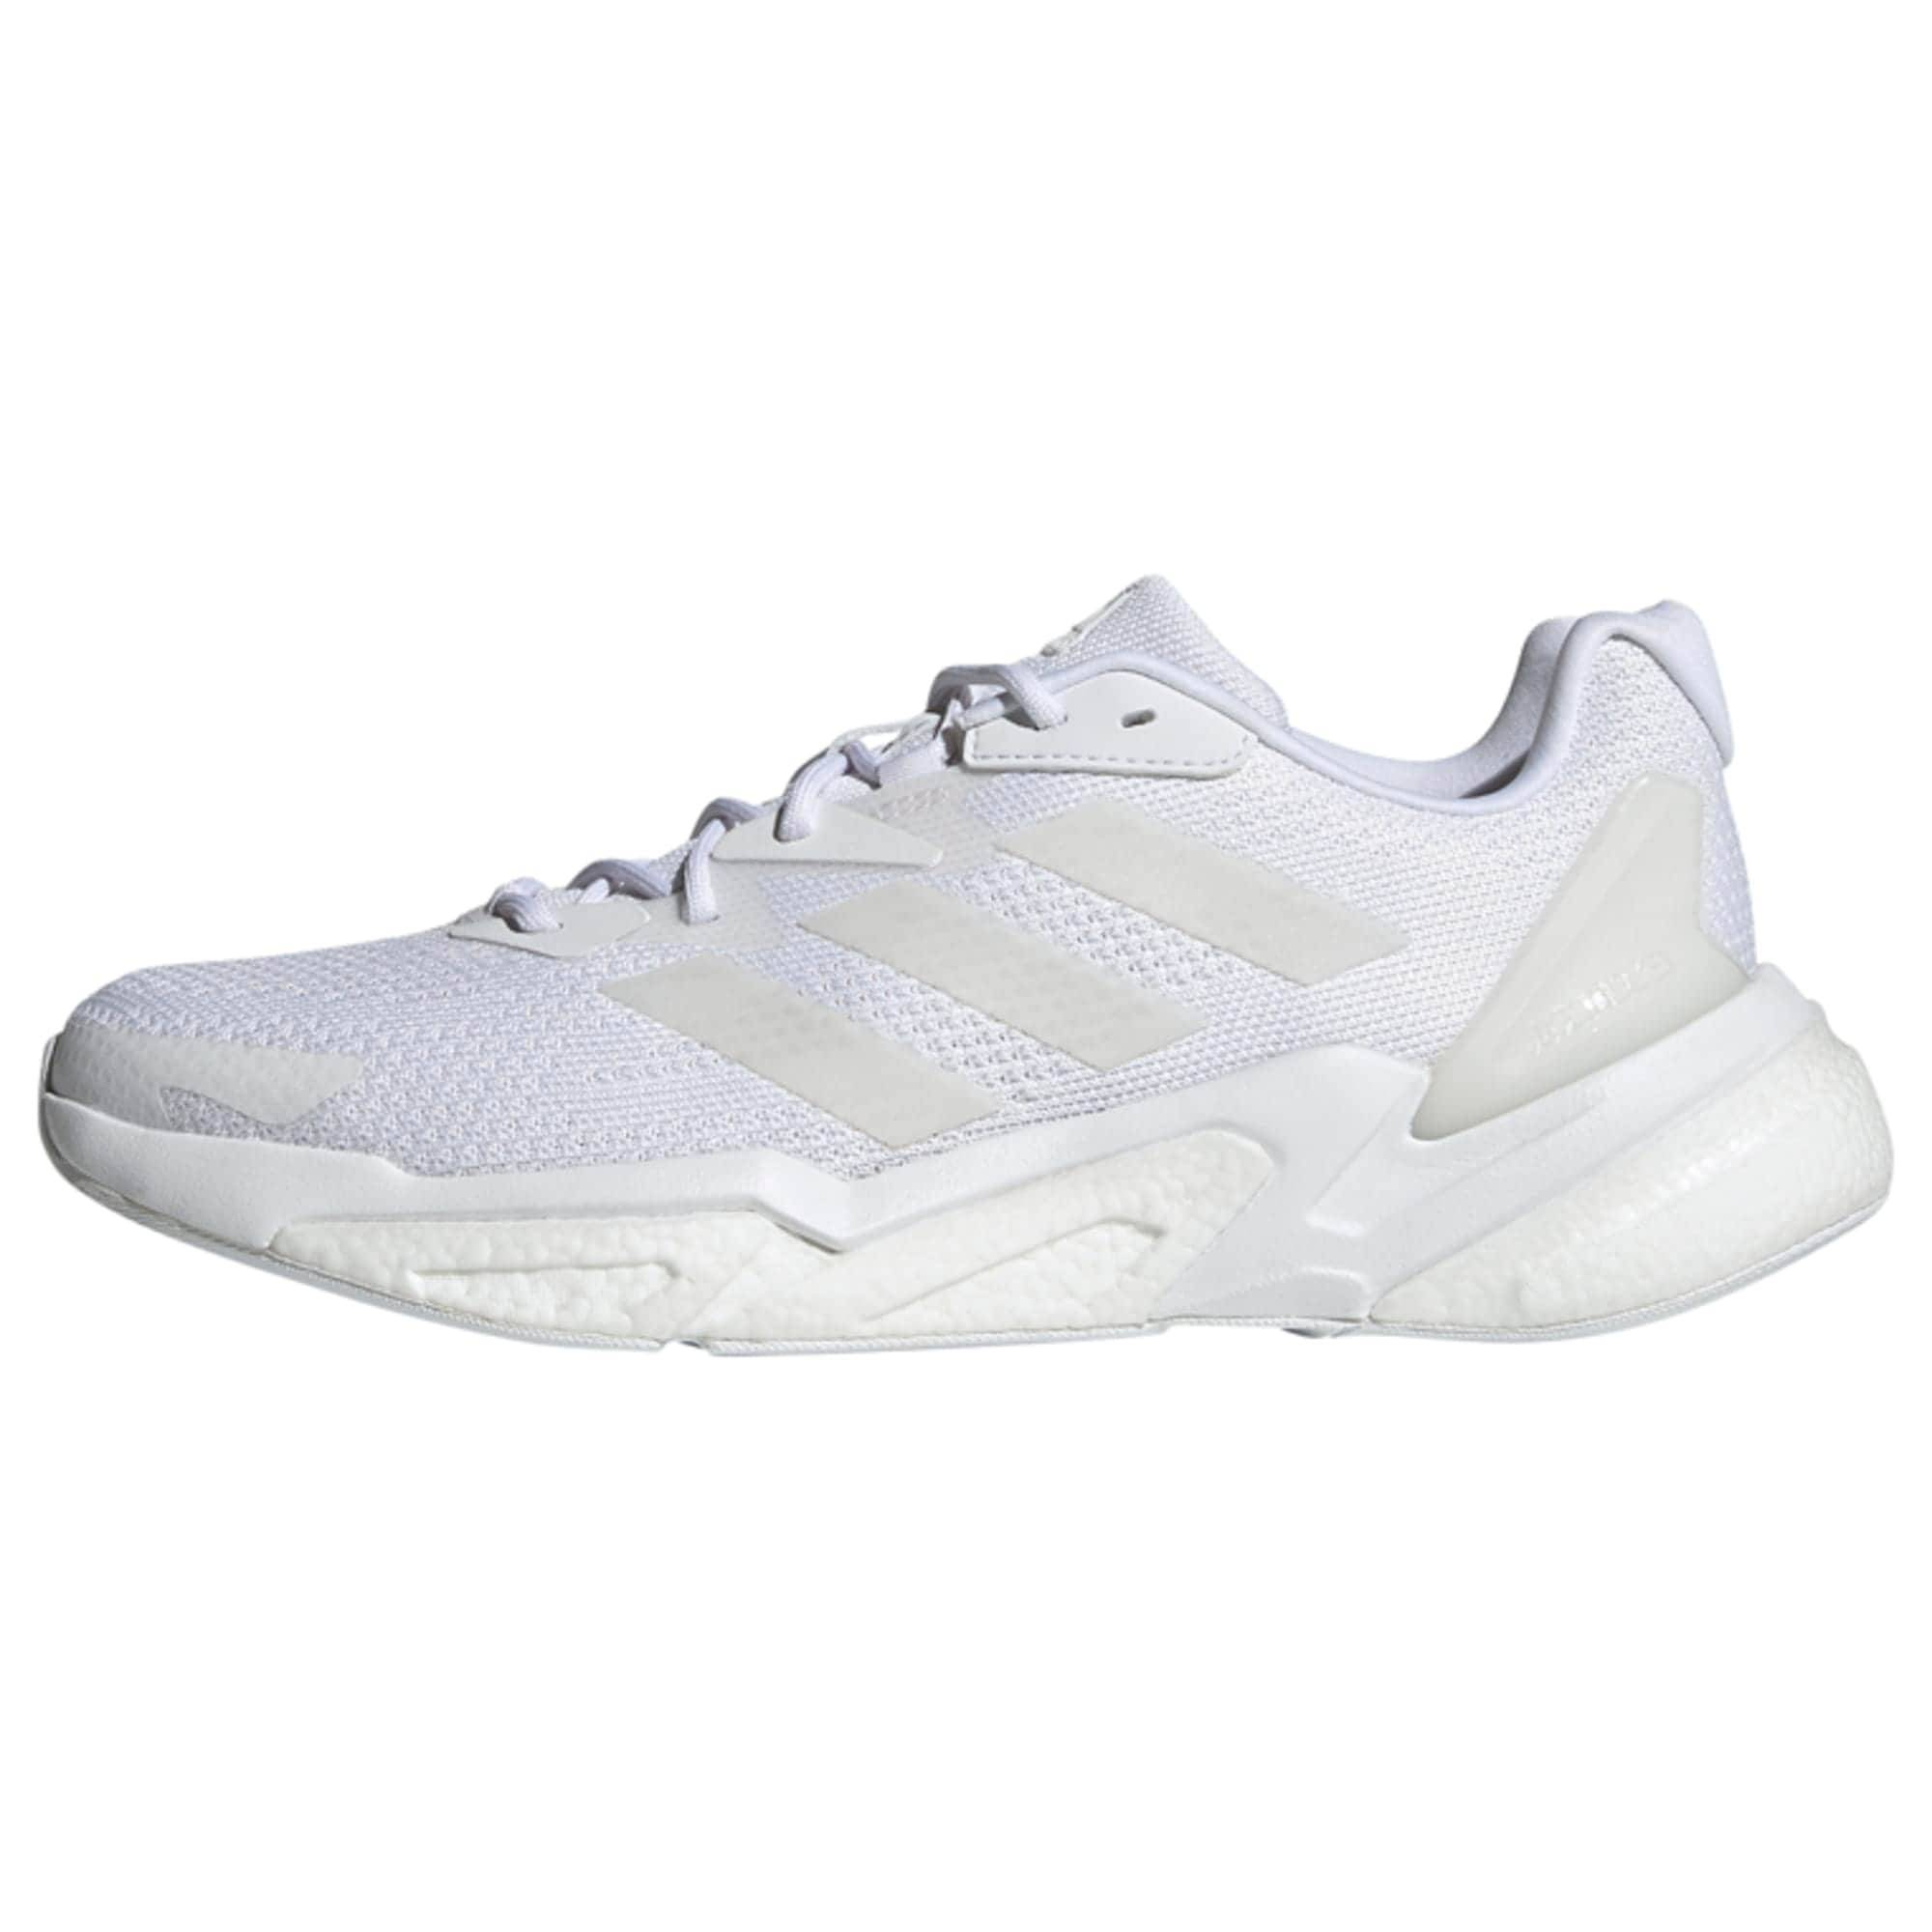 ADIDAS PERFORMANCE Chaussure de course  - Blanc - Taille: 7 - male